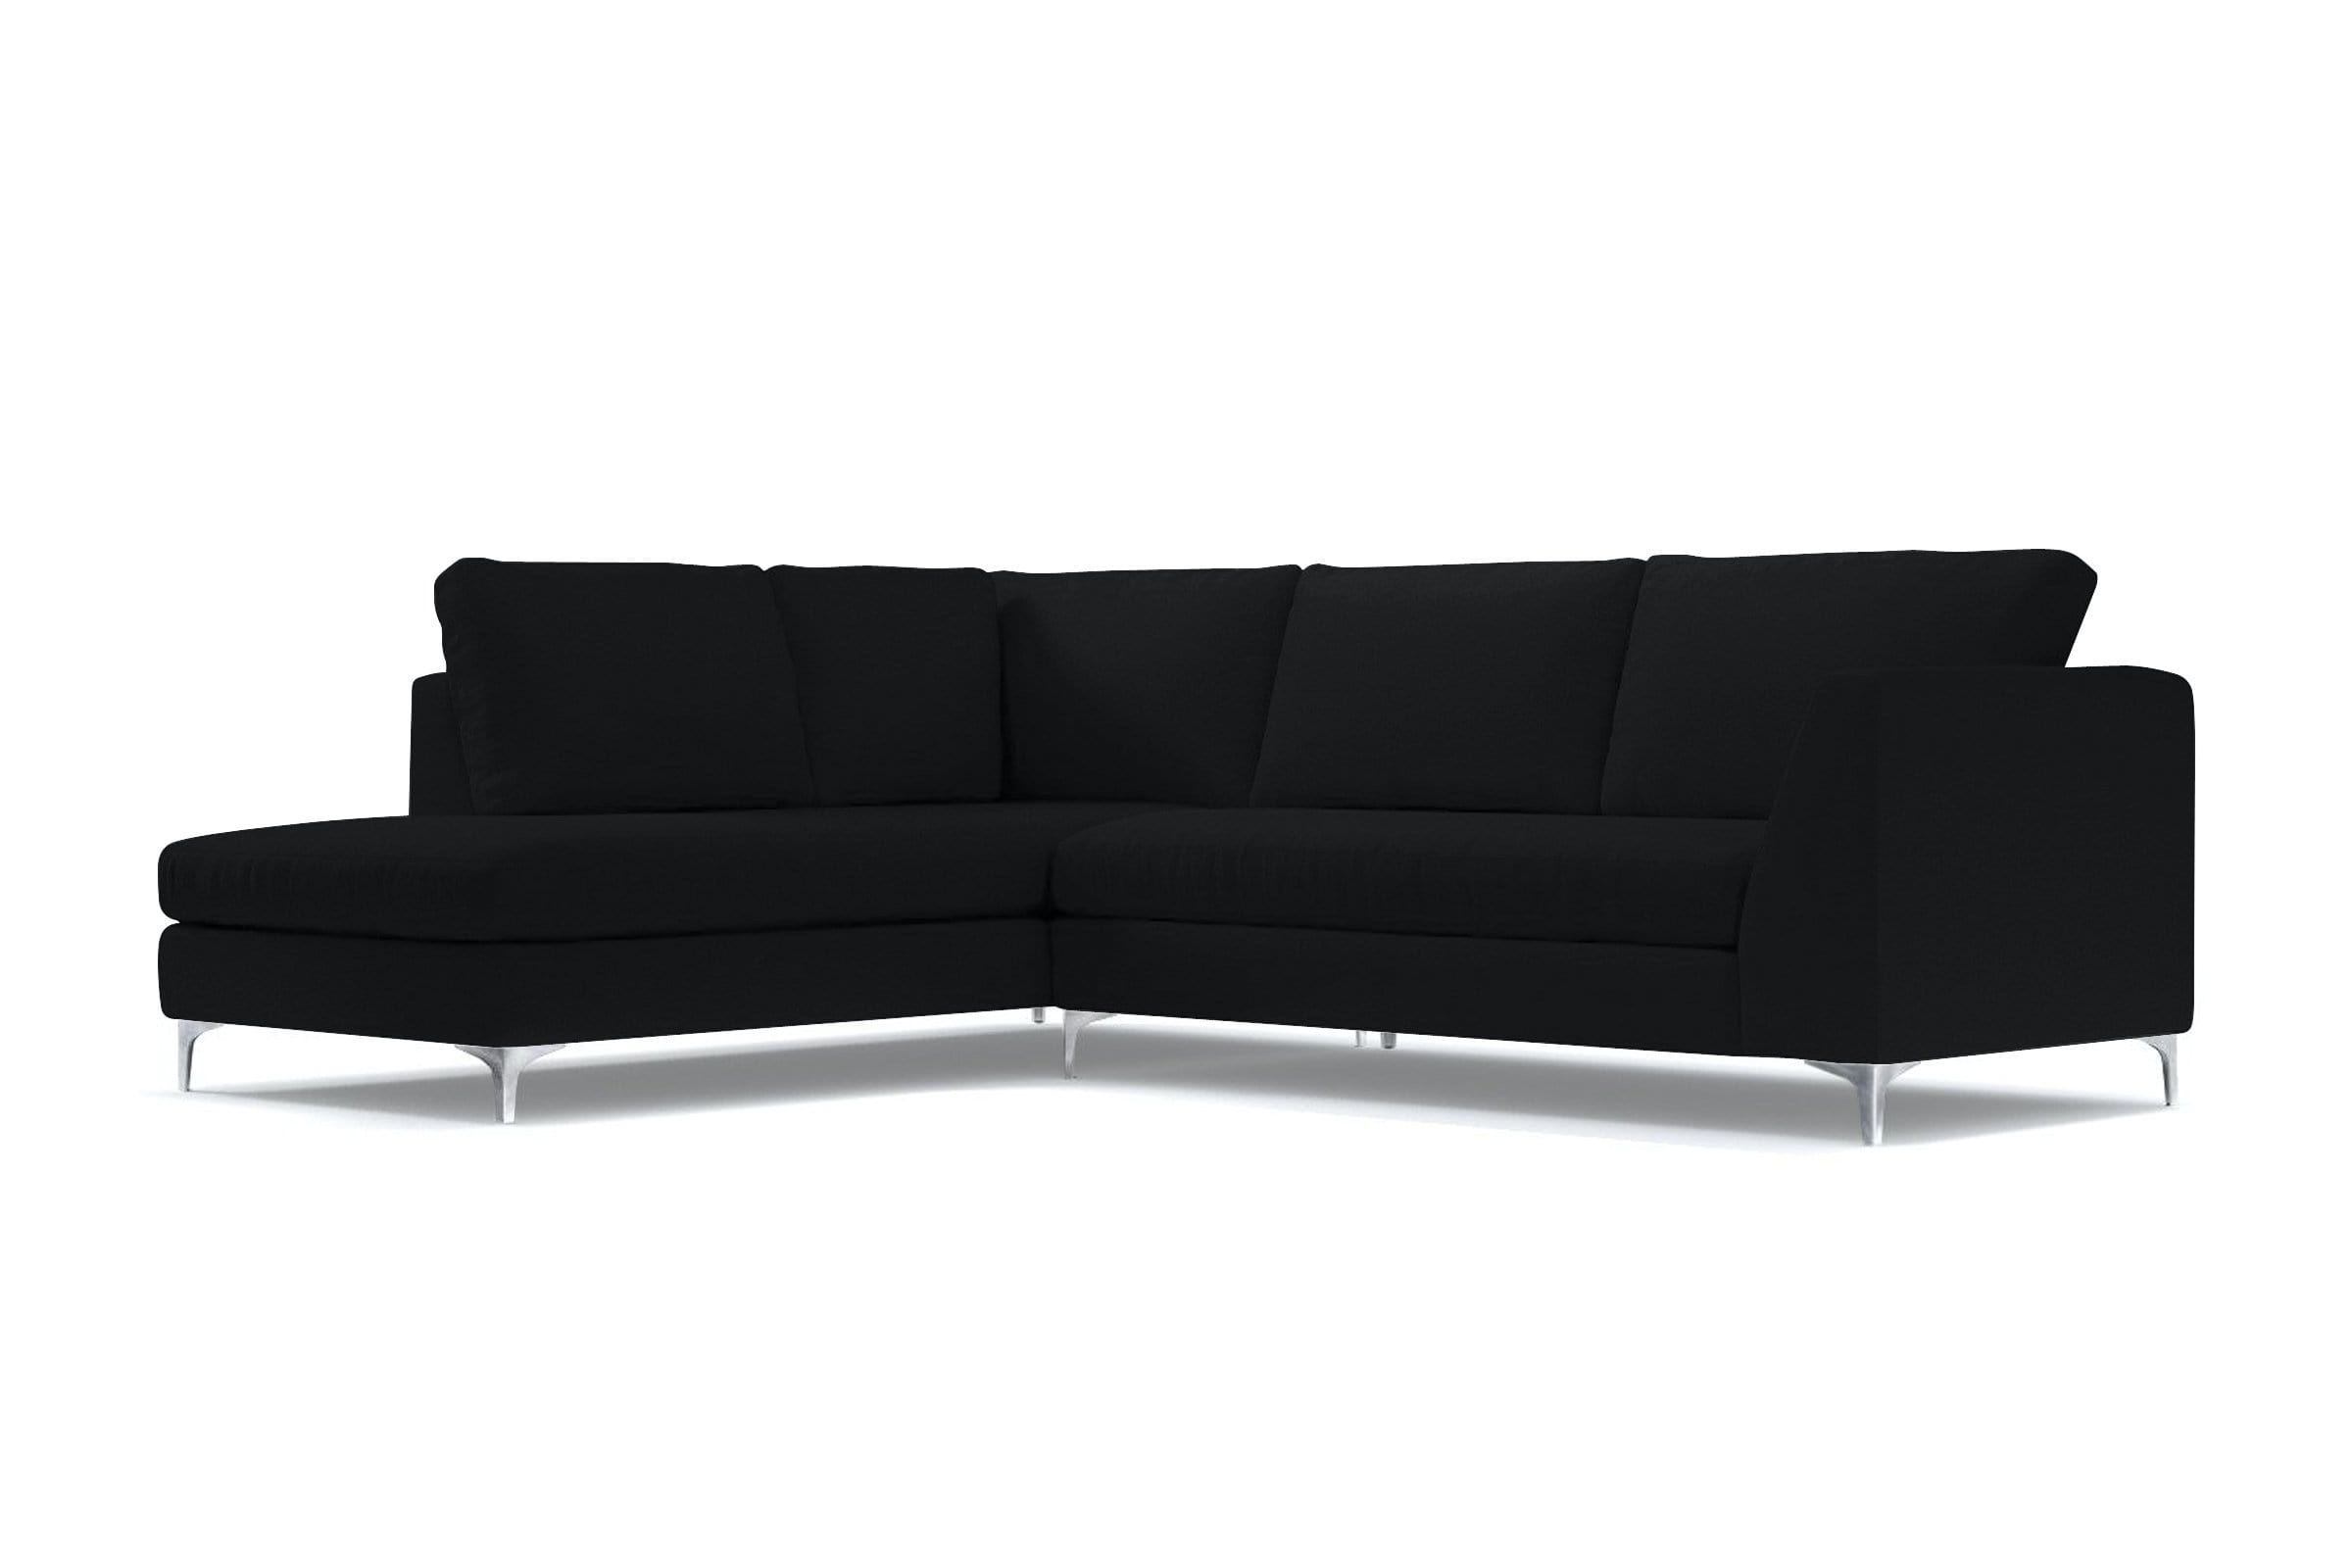 Mulholland 2pc Sectional Sofa - Black Velvet - Modern Sectional Sofa Made in USA - Sold by Apt2B